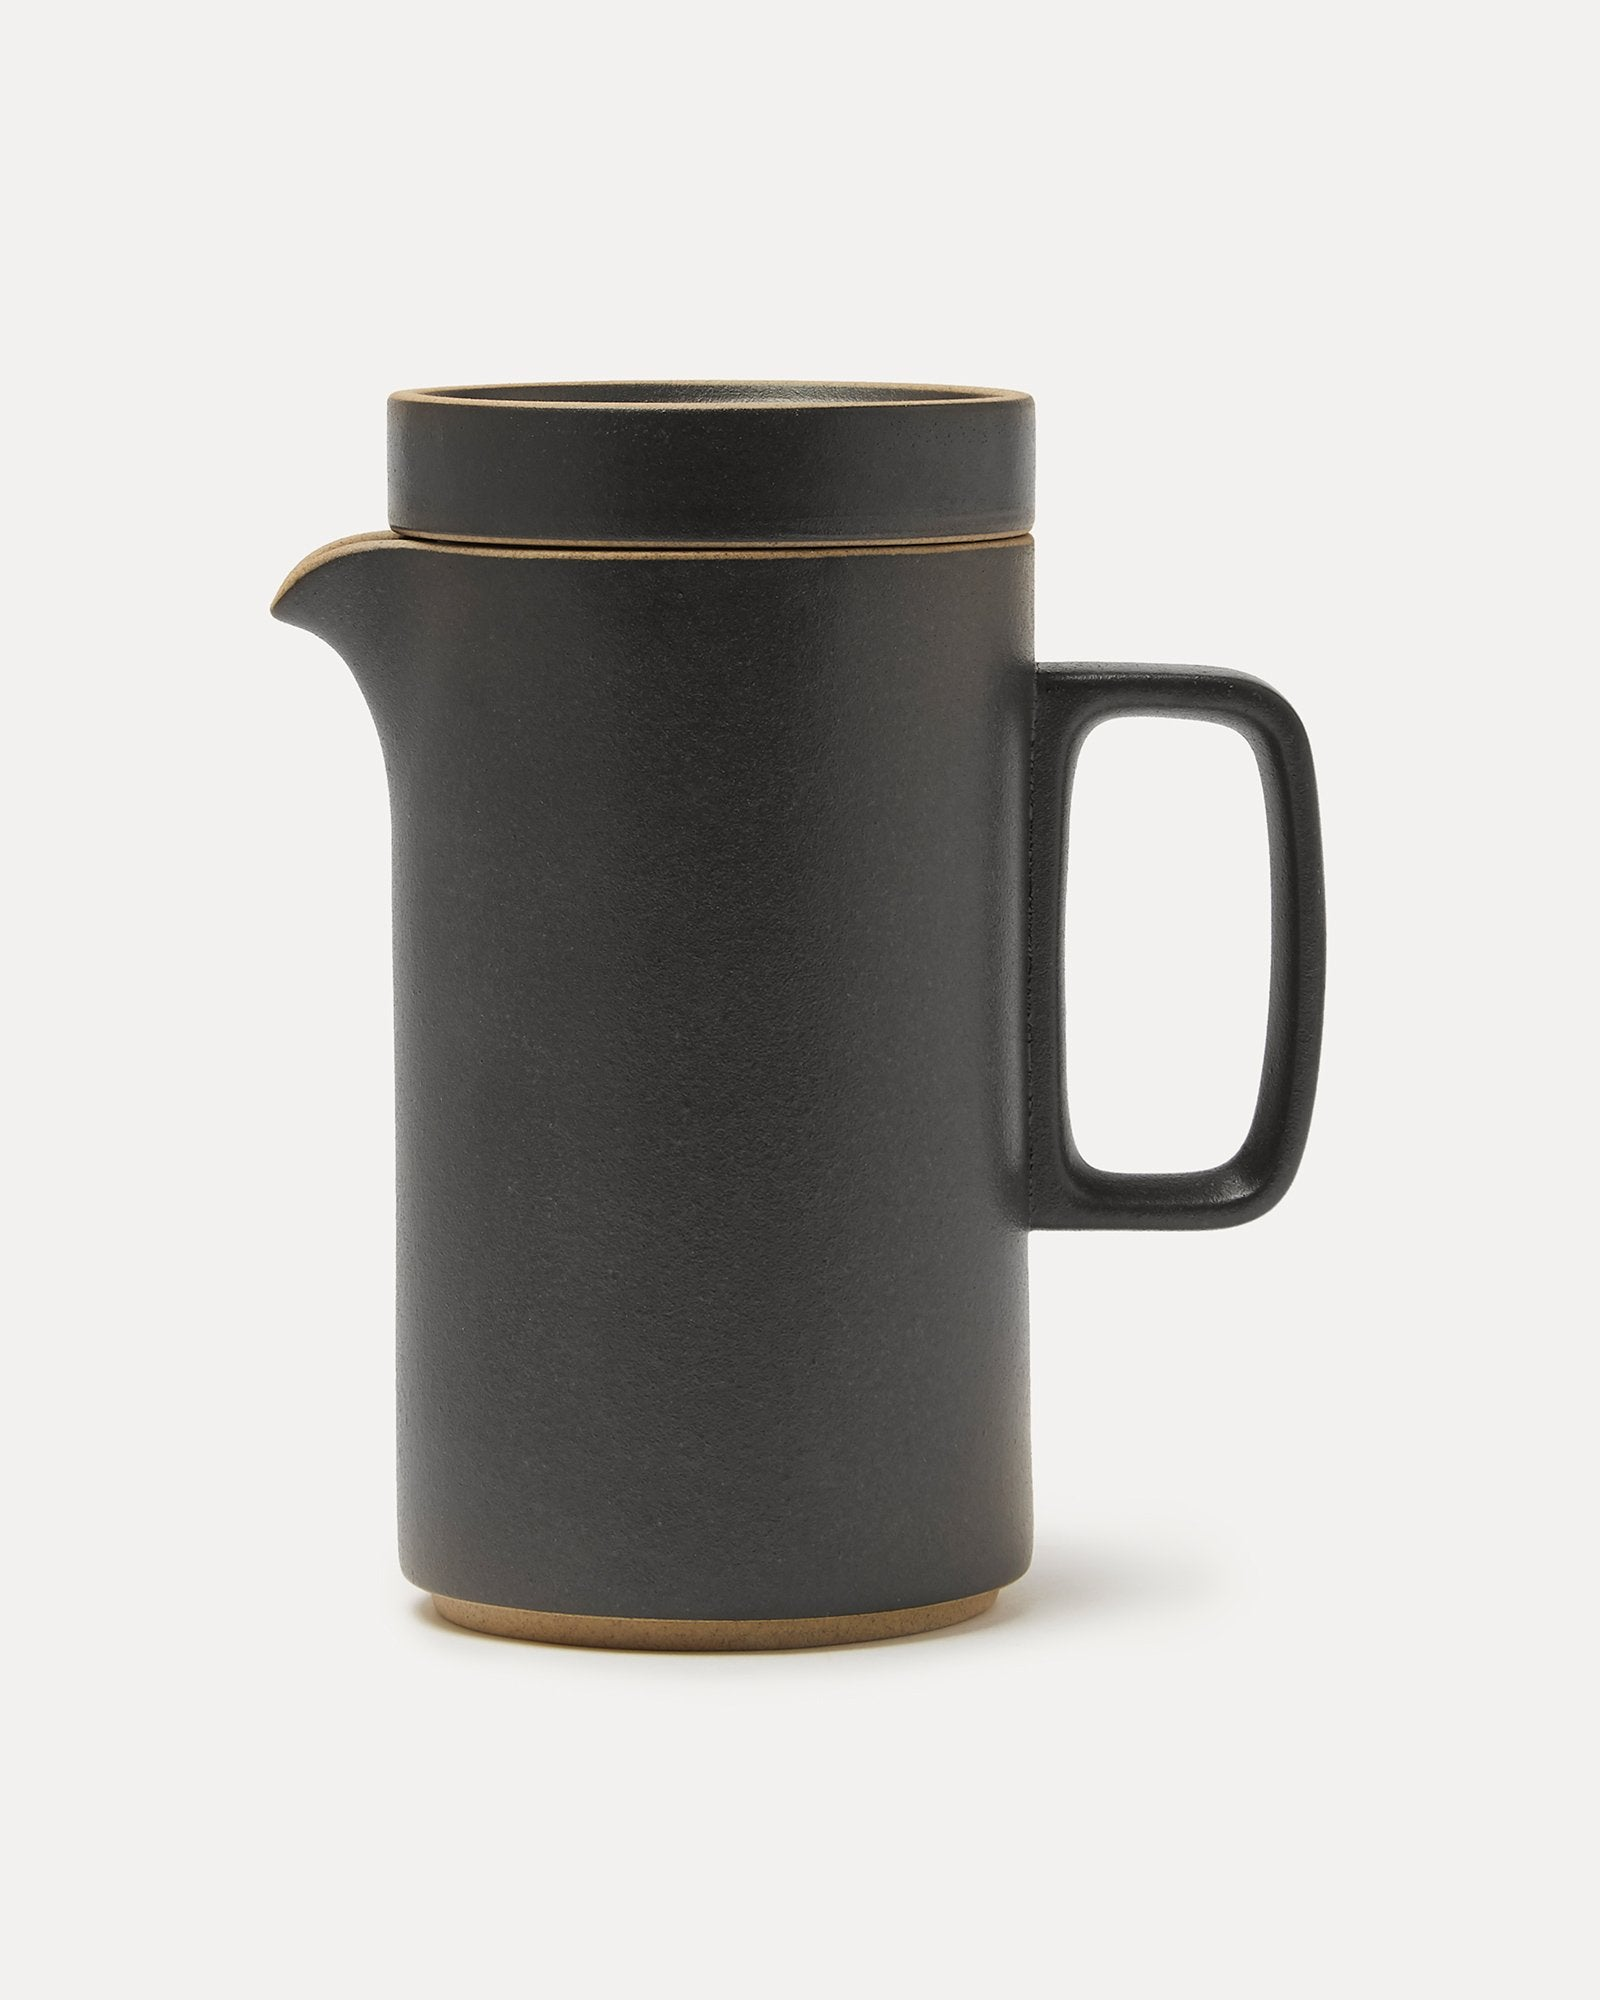 Hasami Porcelain Tea Pot Black